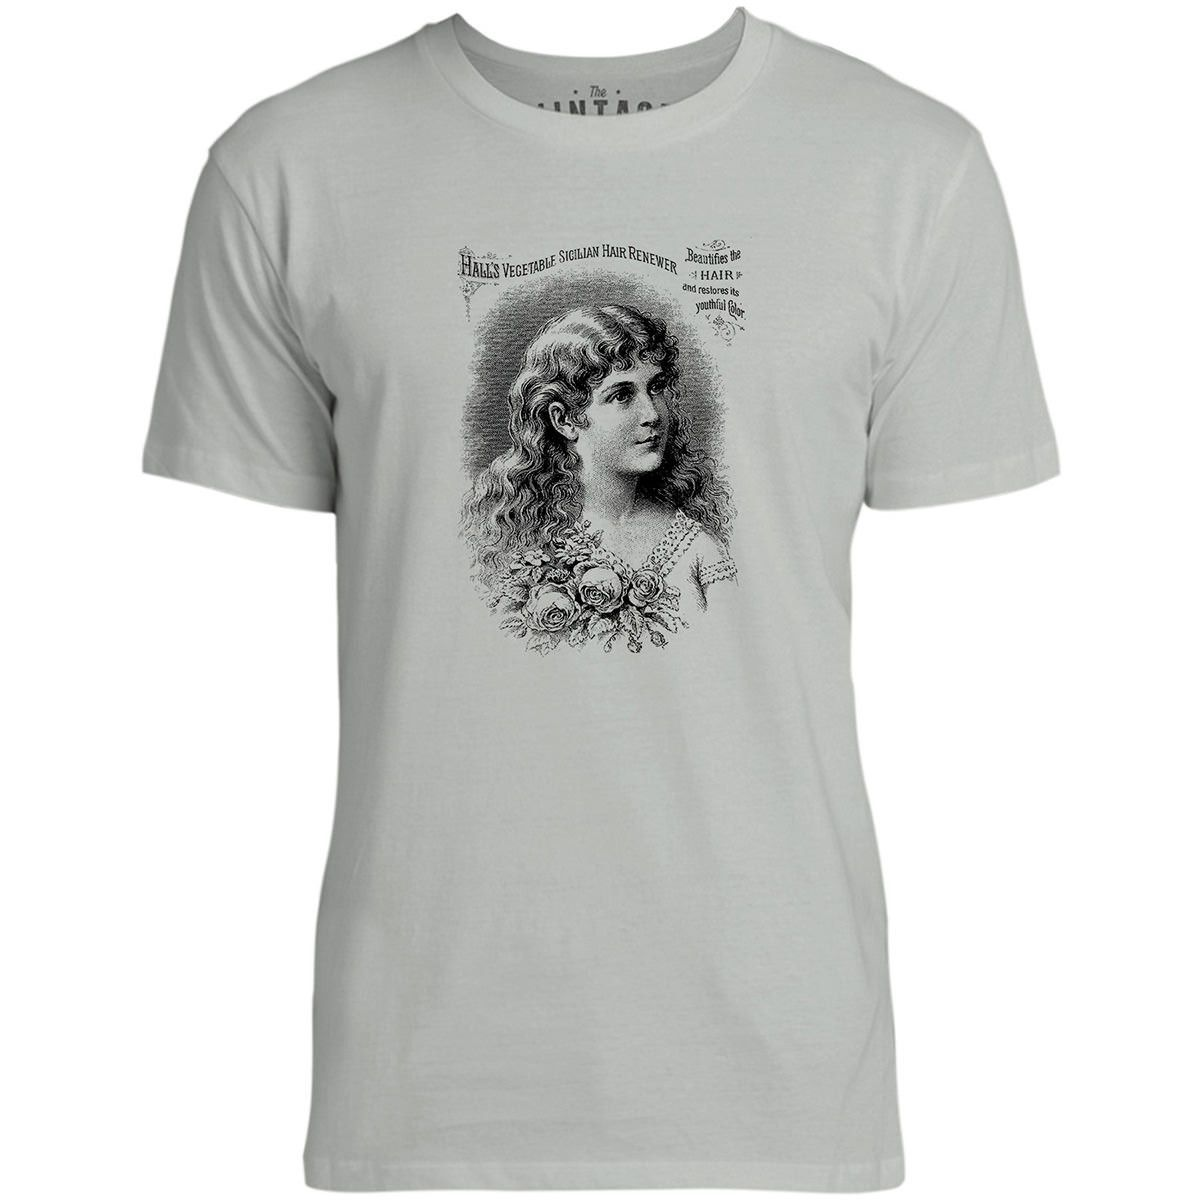 Mintage Sicilian Hair Renewer Ad Mens Fine Jersey T-Shirt (Silver)